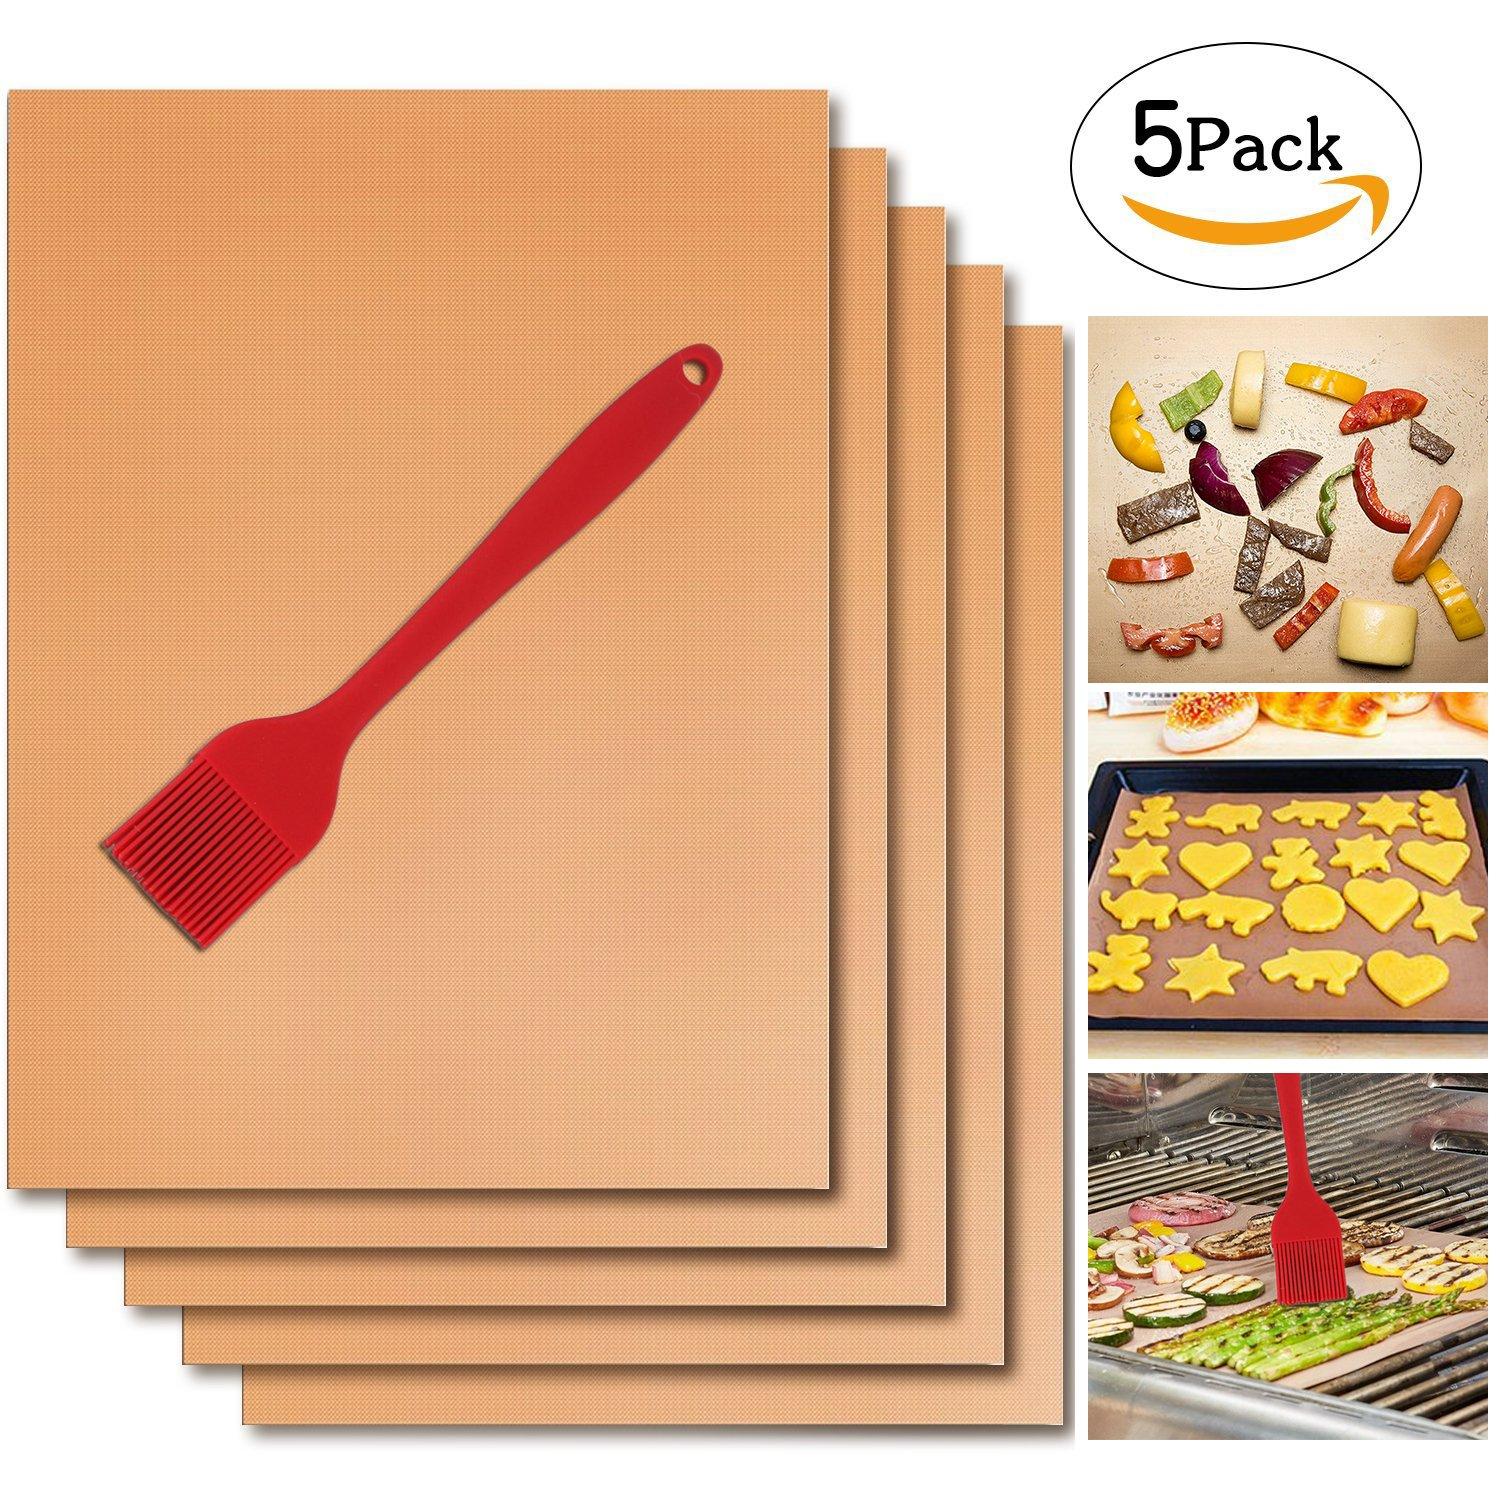 Copper Grill Mat Set of 5 with one Red Silicone Brush, Teflon Fiber BBQ Grill & Baking Mats, Non-stick, Reusable, Easy to Clean and Store - 15.75x13.00Inches Tuptoel